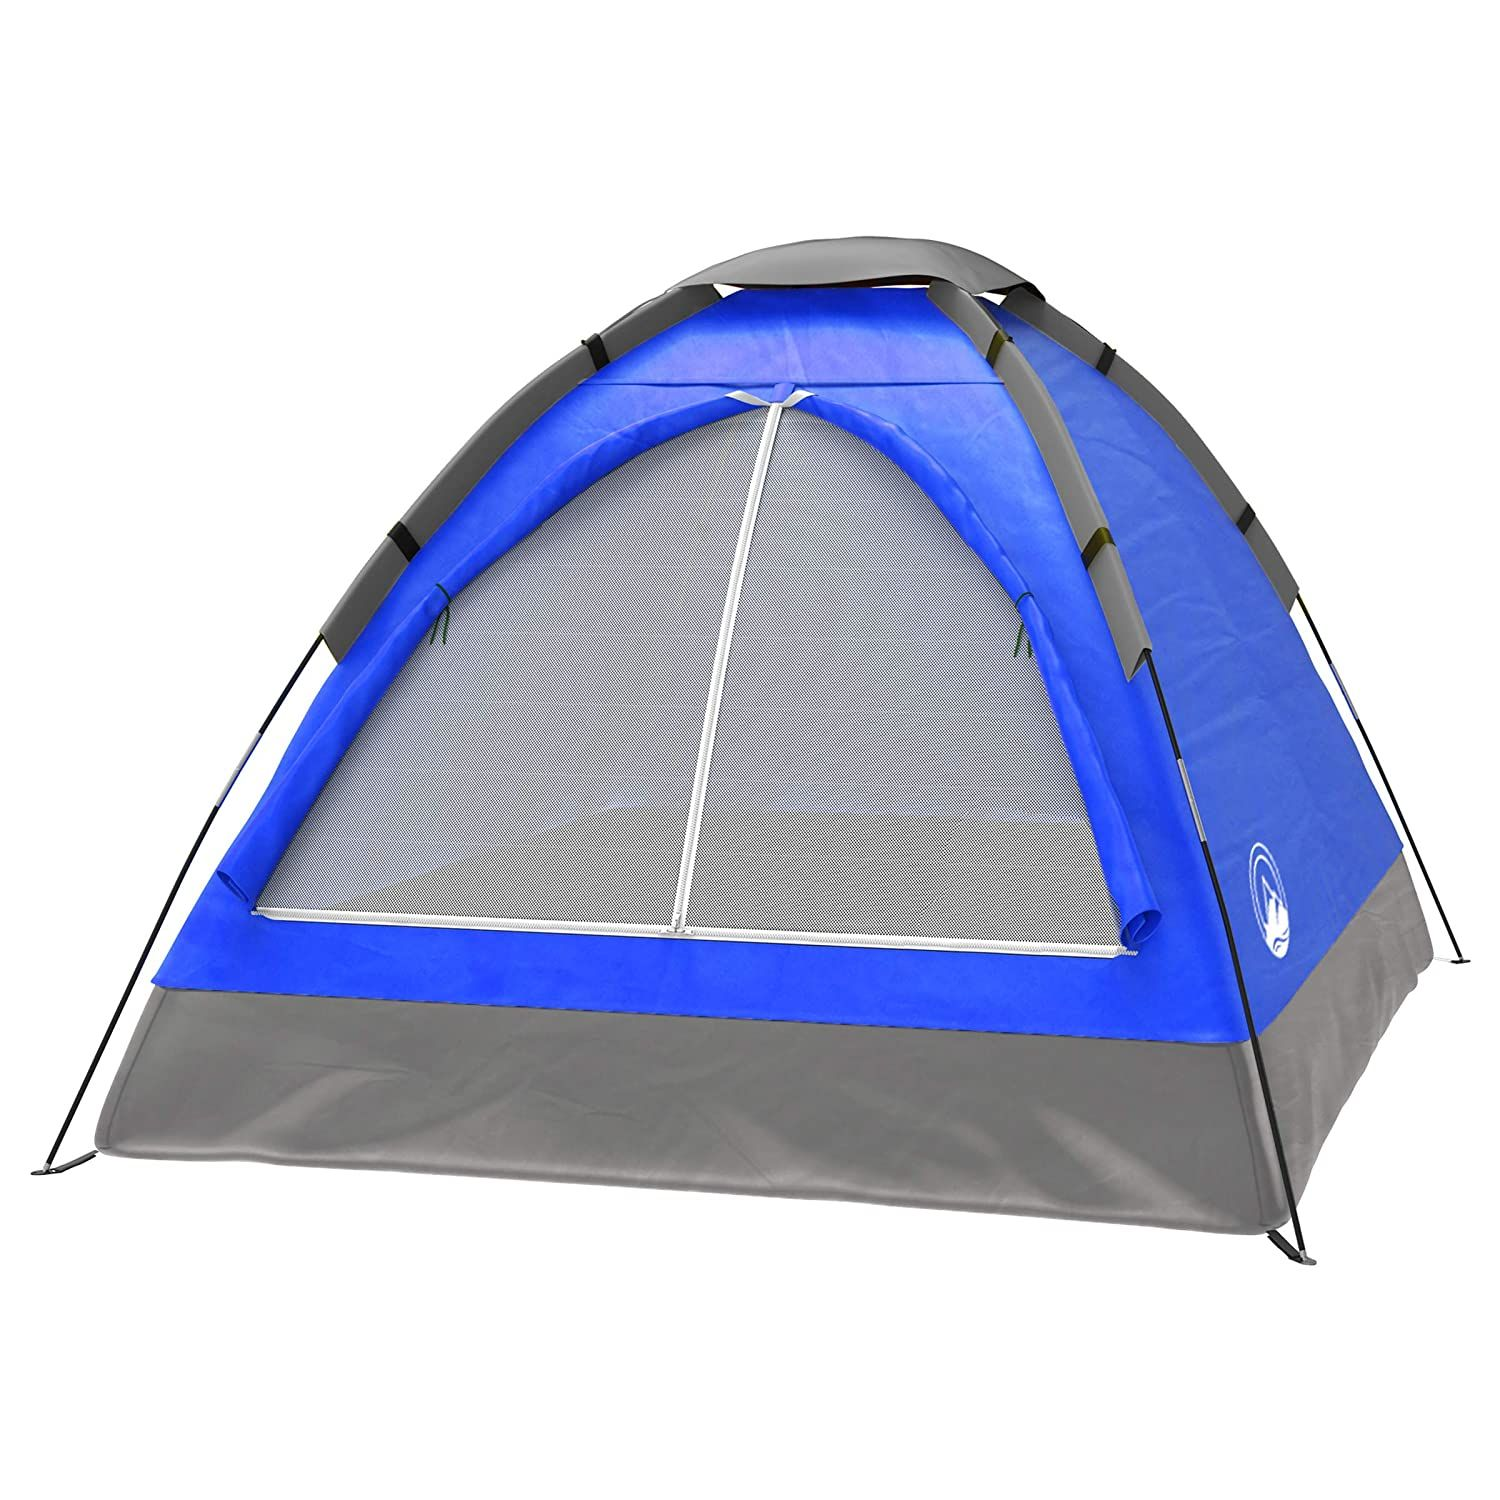 2 Person Tent Dome Tents For Camping With Carry Bag By Wakeman Outdoors Camping Gear For Blue Two Person Tent Dome Tent Tent